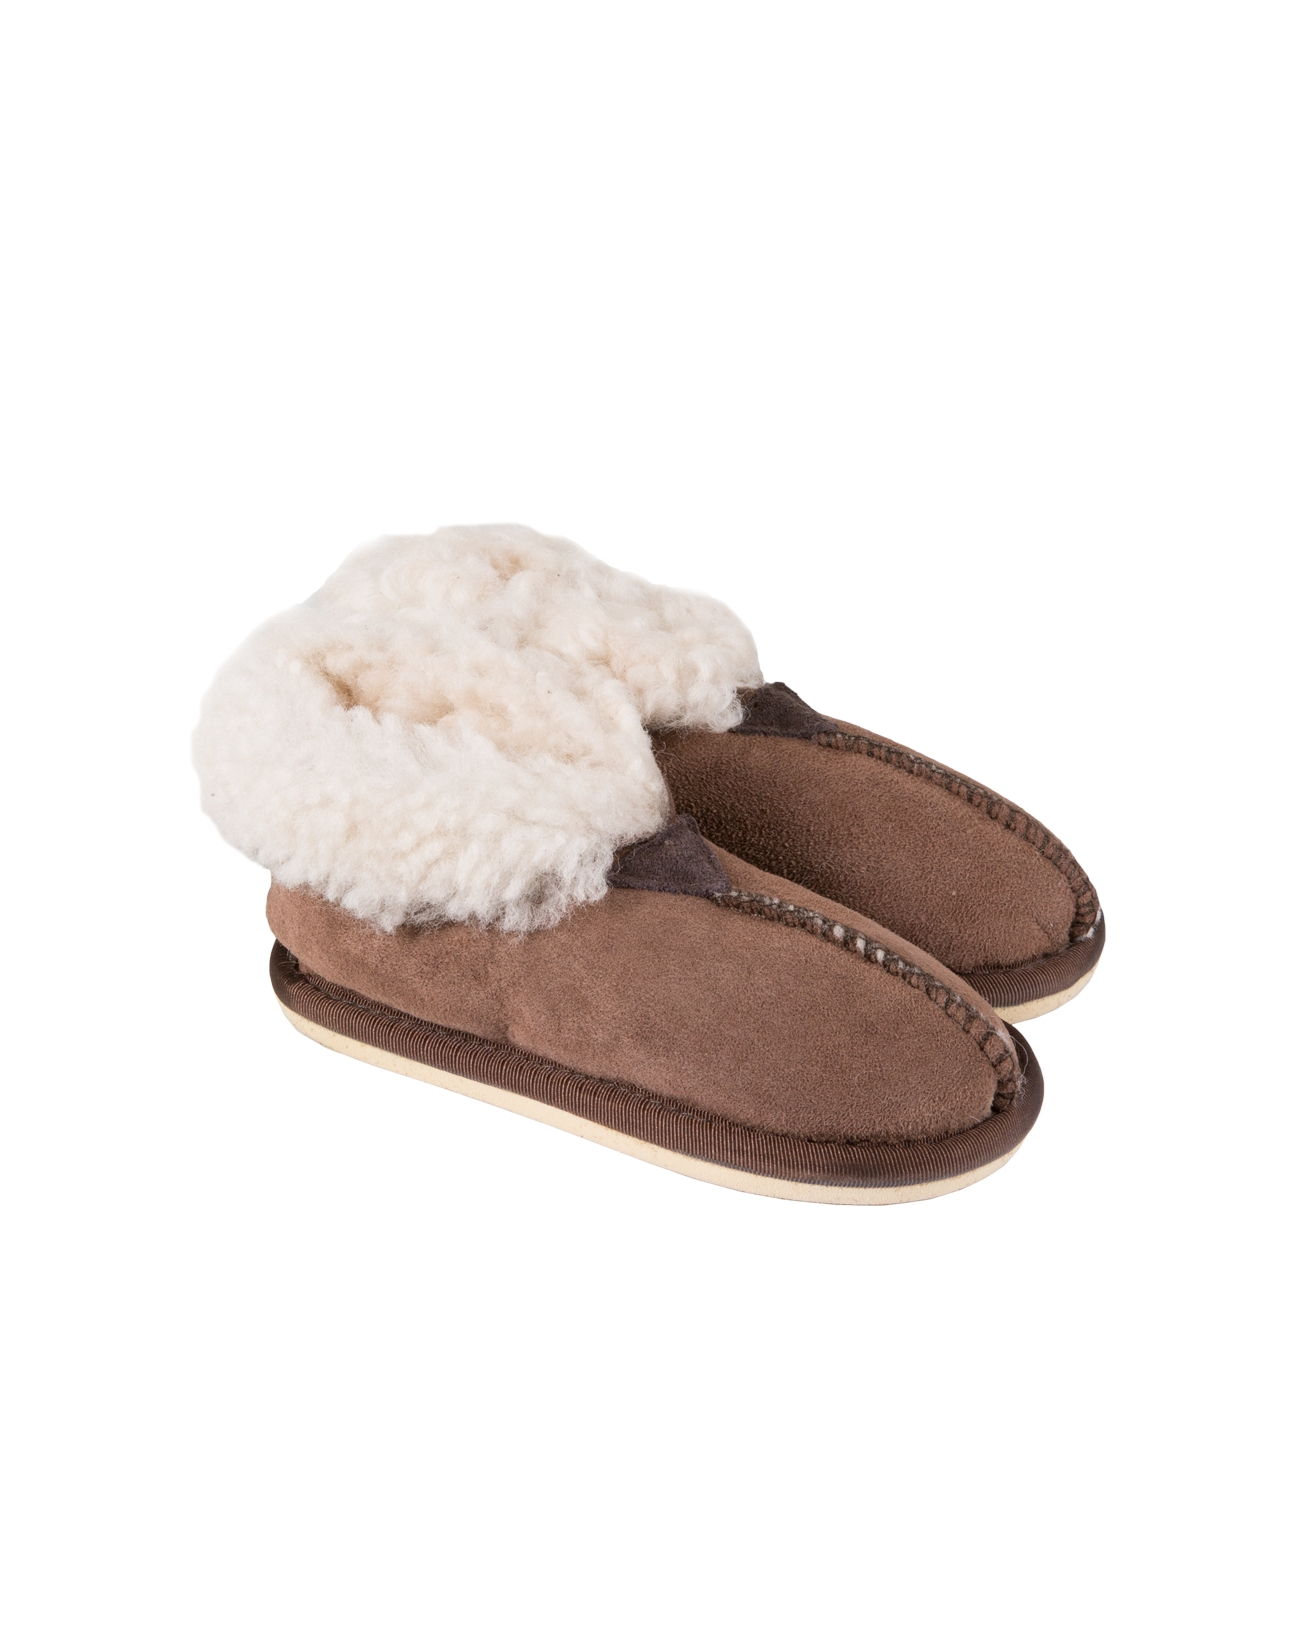 Kids Bootee Slipper - Size 7-8 - Mocca with white wool - 176